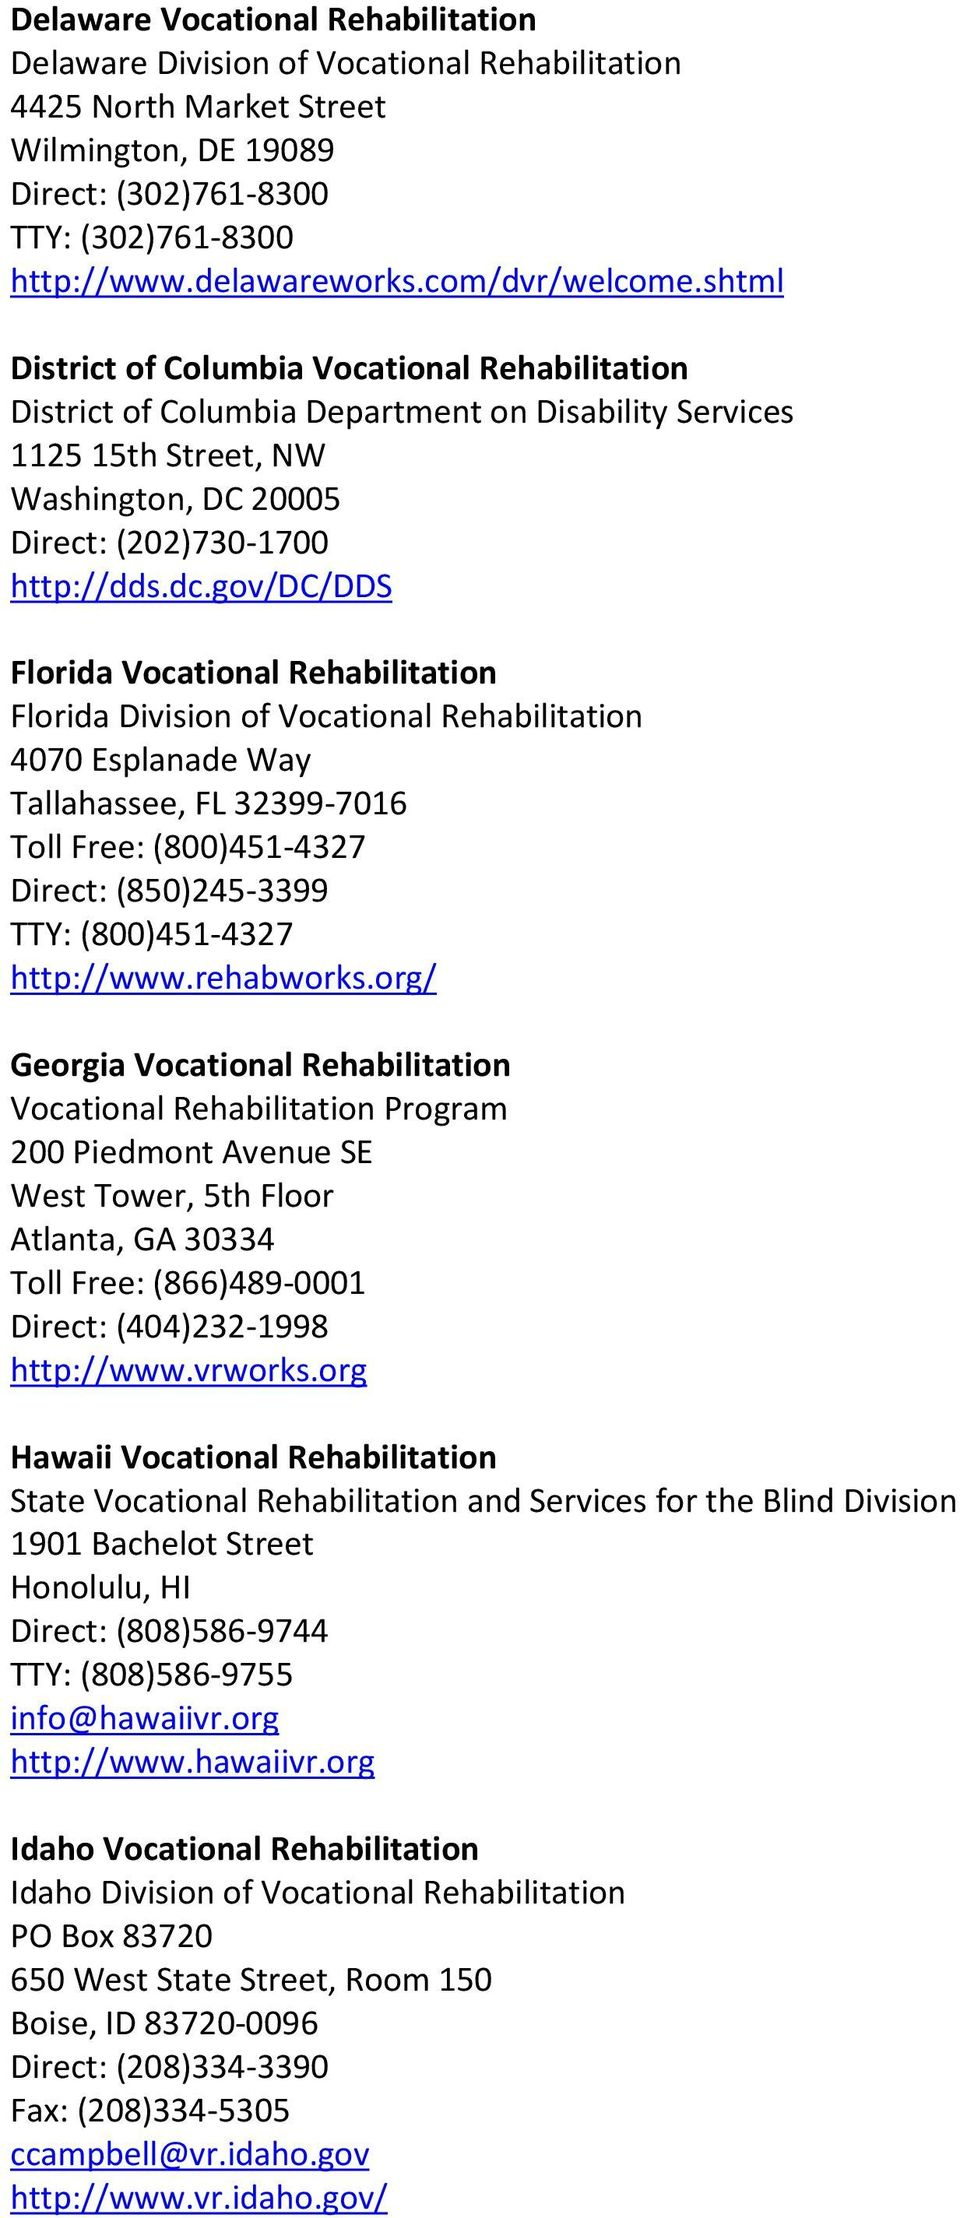 dc.gov/dc/dds Florida Vocational Rehabilitation Florida Division of Vocational Rehabilitation 4070 Esplanade Way Tallahassee, FL 32399-7016 Toll Free: (800)451-4327 Direct: (850)245-3399 TTY: